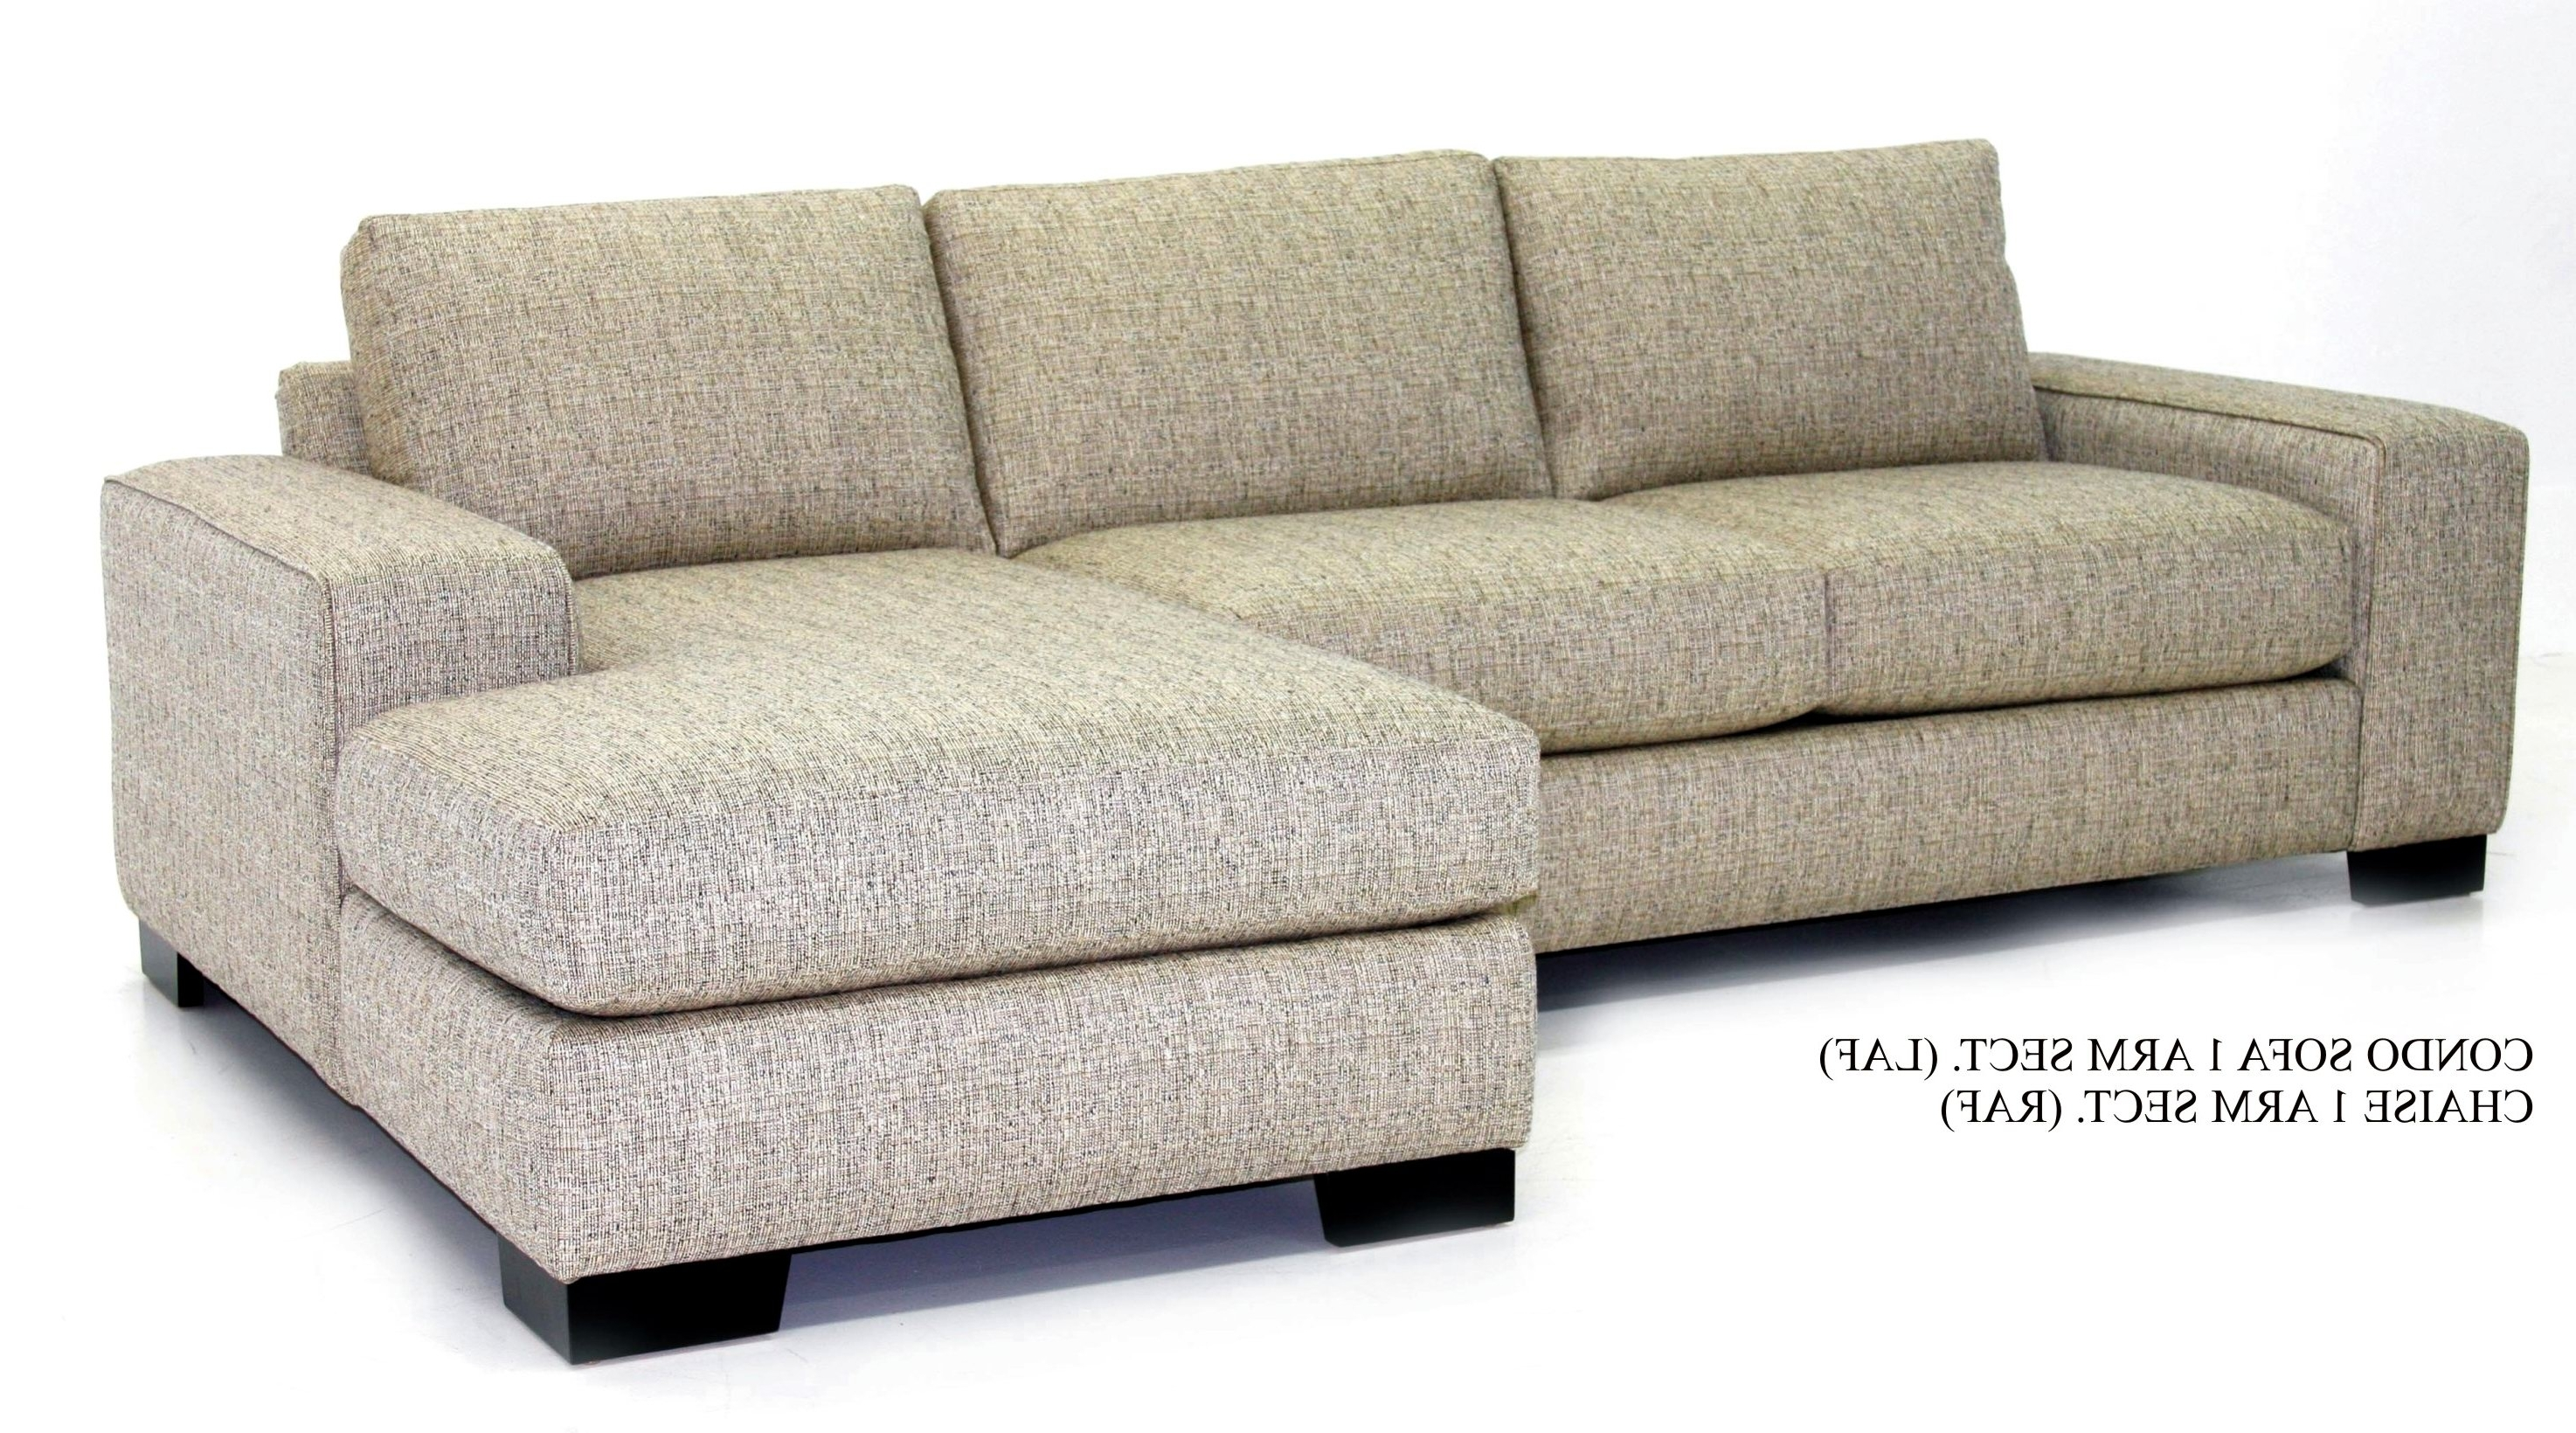 Modena Sofa And Sectional Sizes Regarding Best And Newest Sectional Sofas For Condos (Gallery 18 of 20)